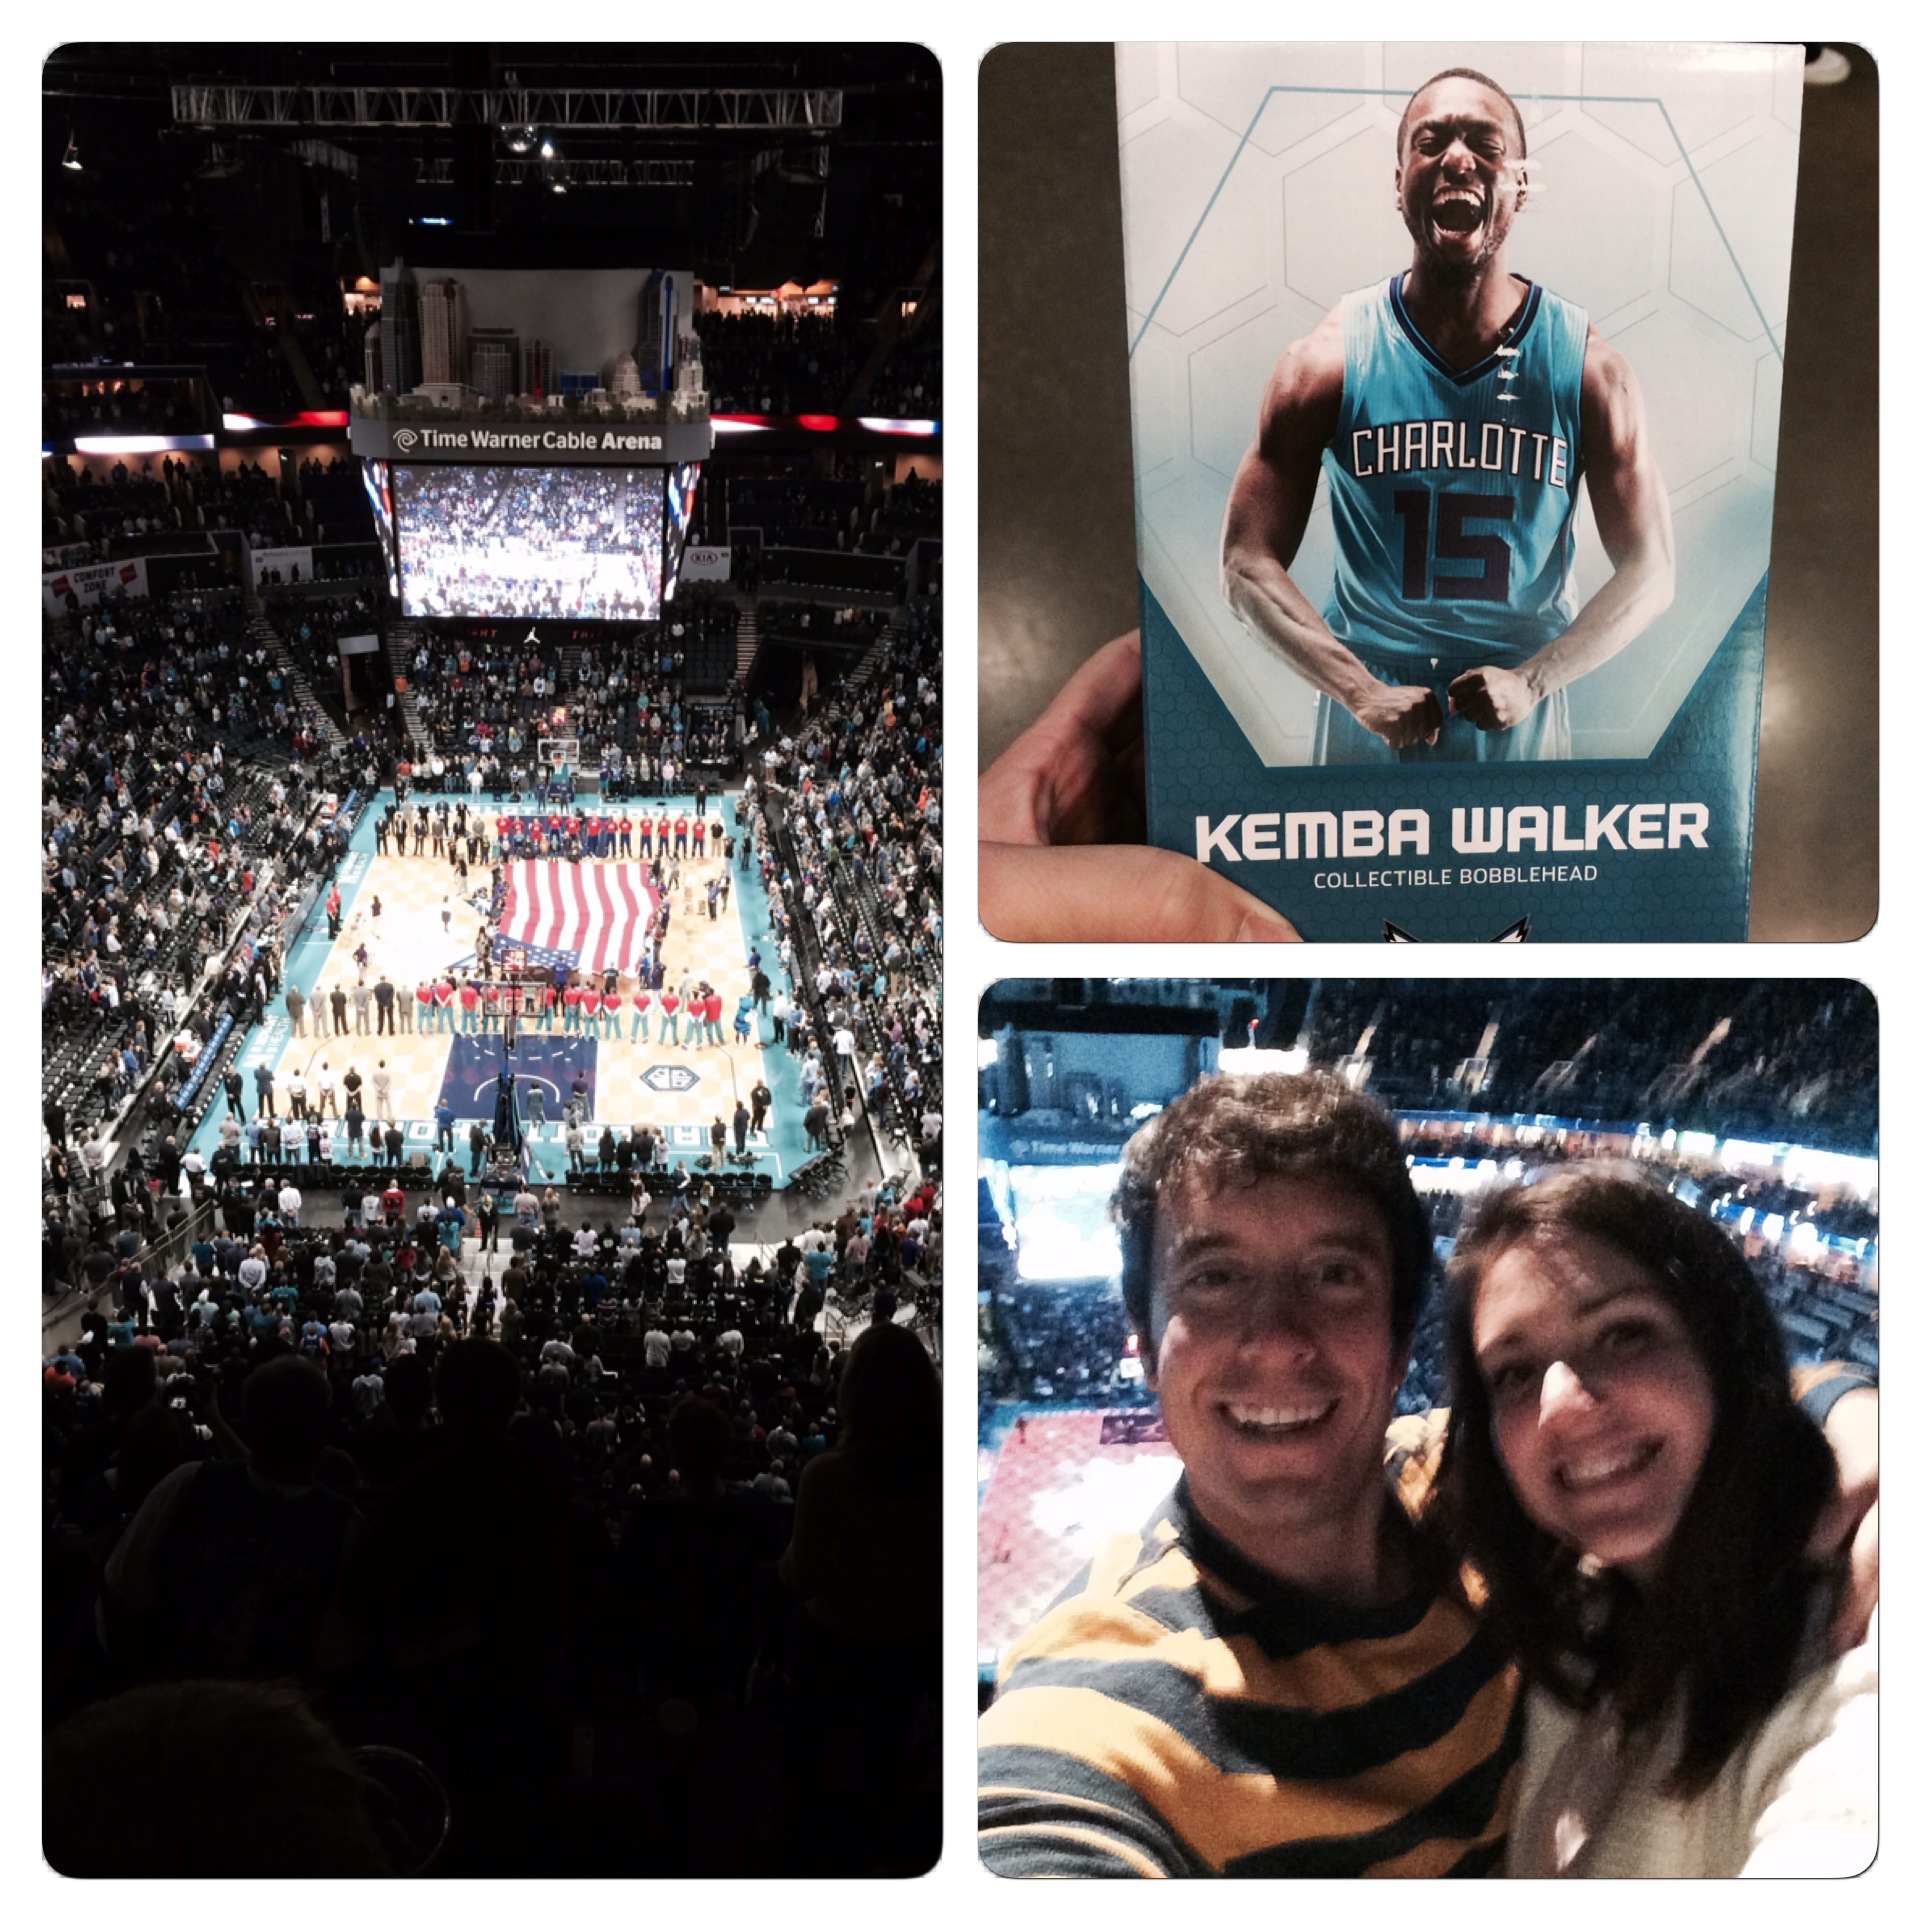 Some images from the game. It was cool to see an NBA game in Charlotte but probably wouldn't do it again.